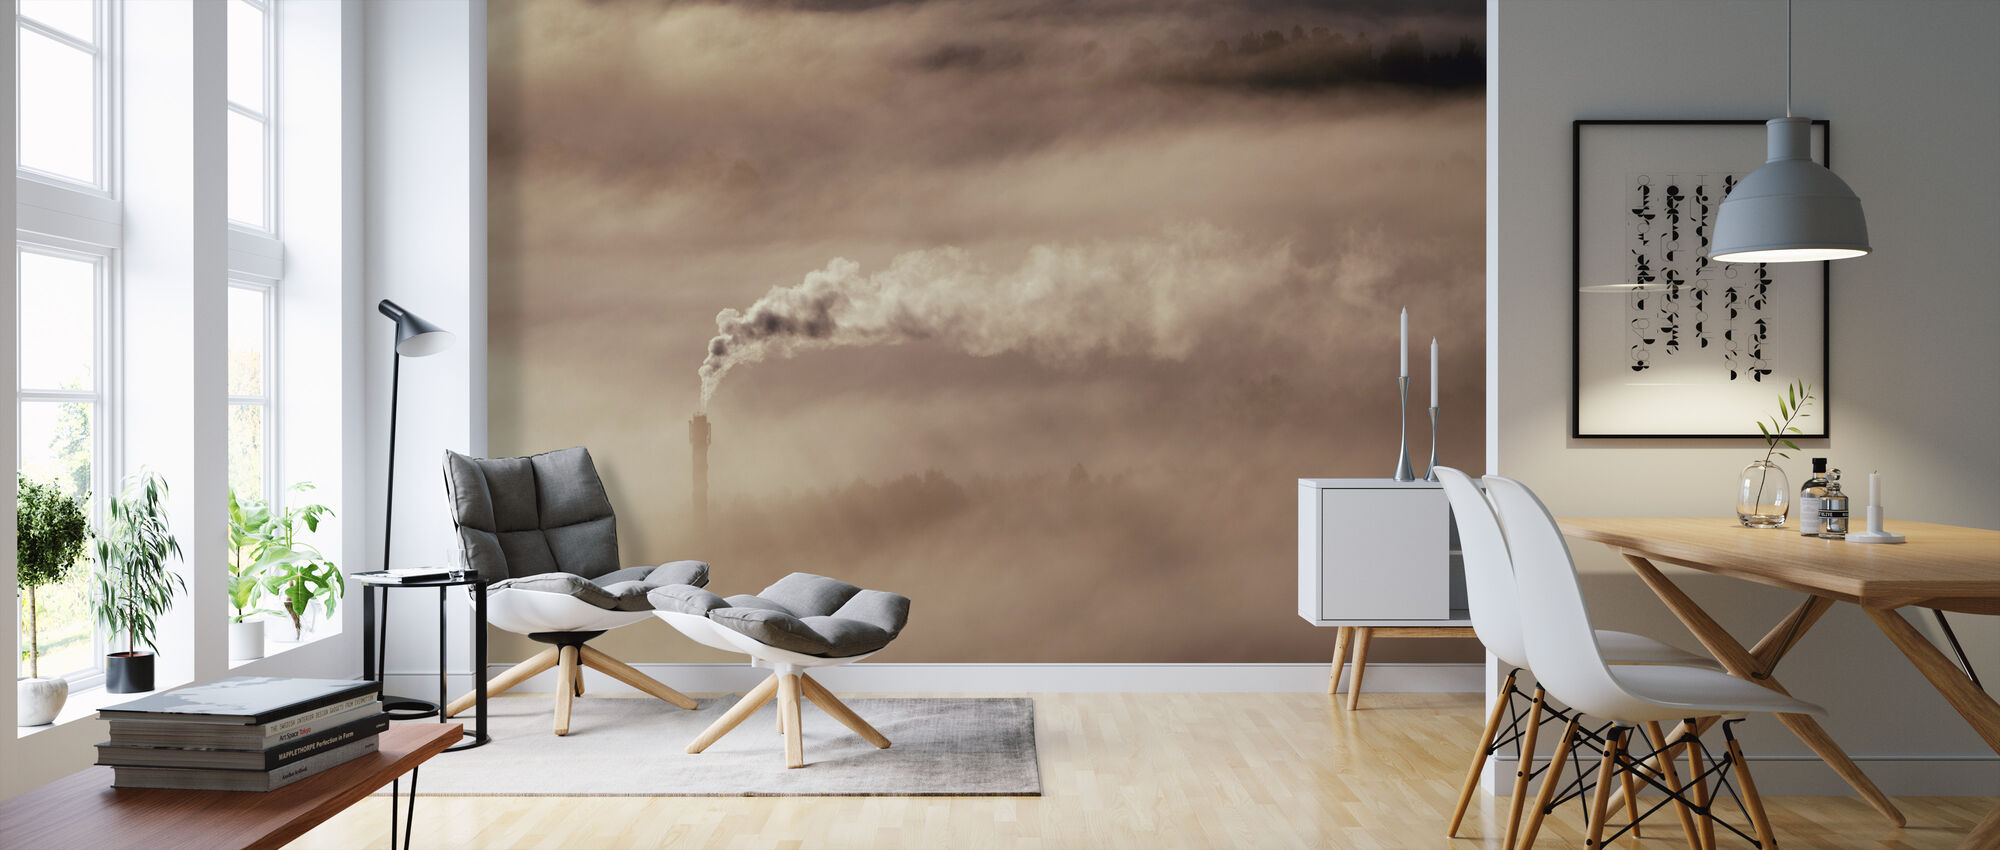 Smoke and Mist - Wallpaper - Living Room